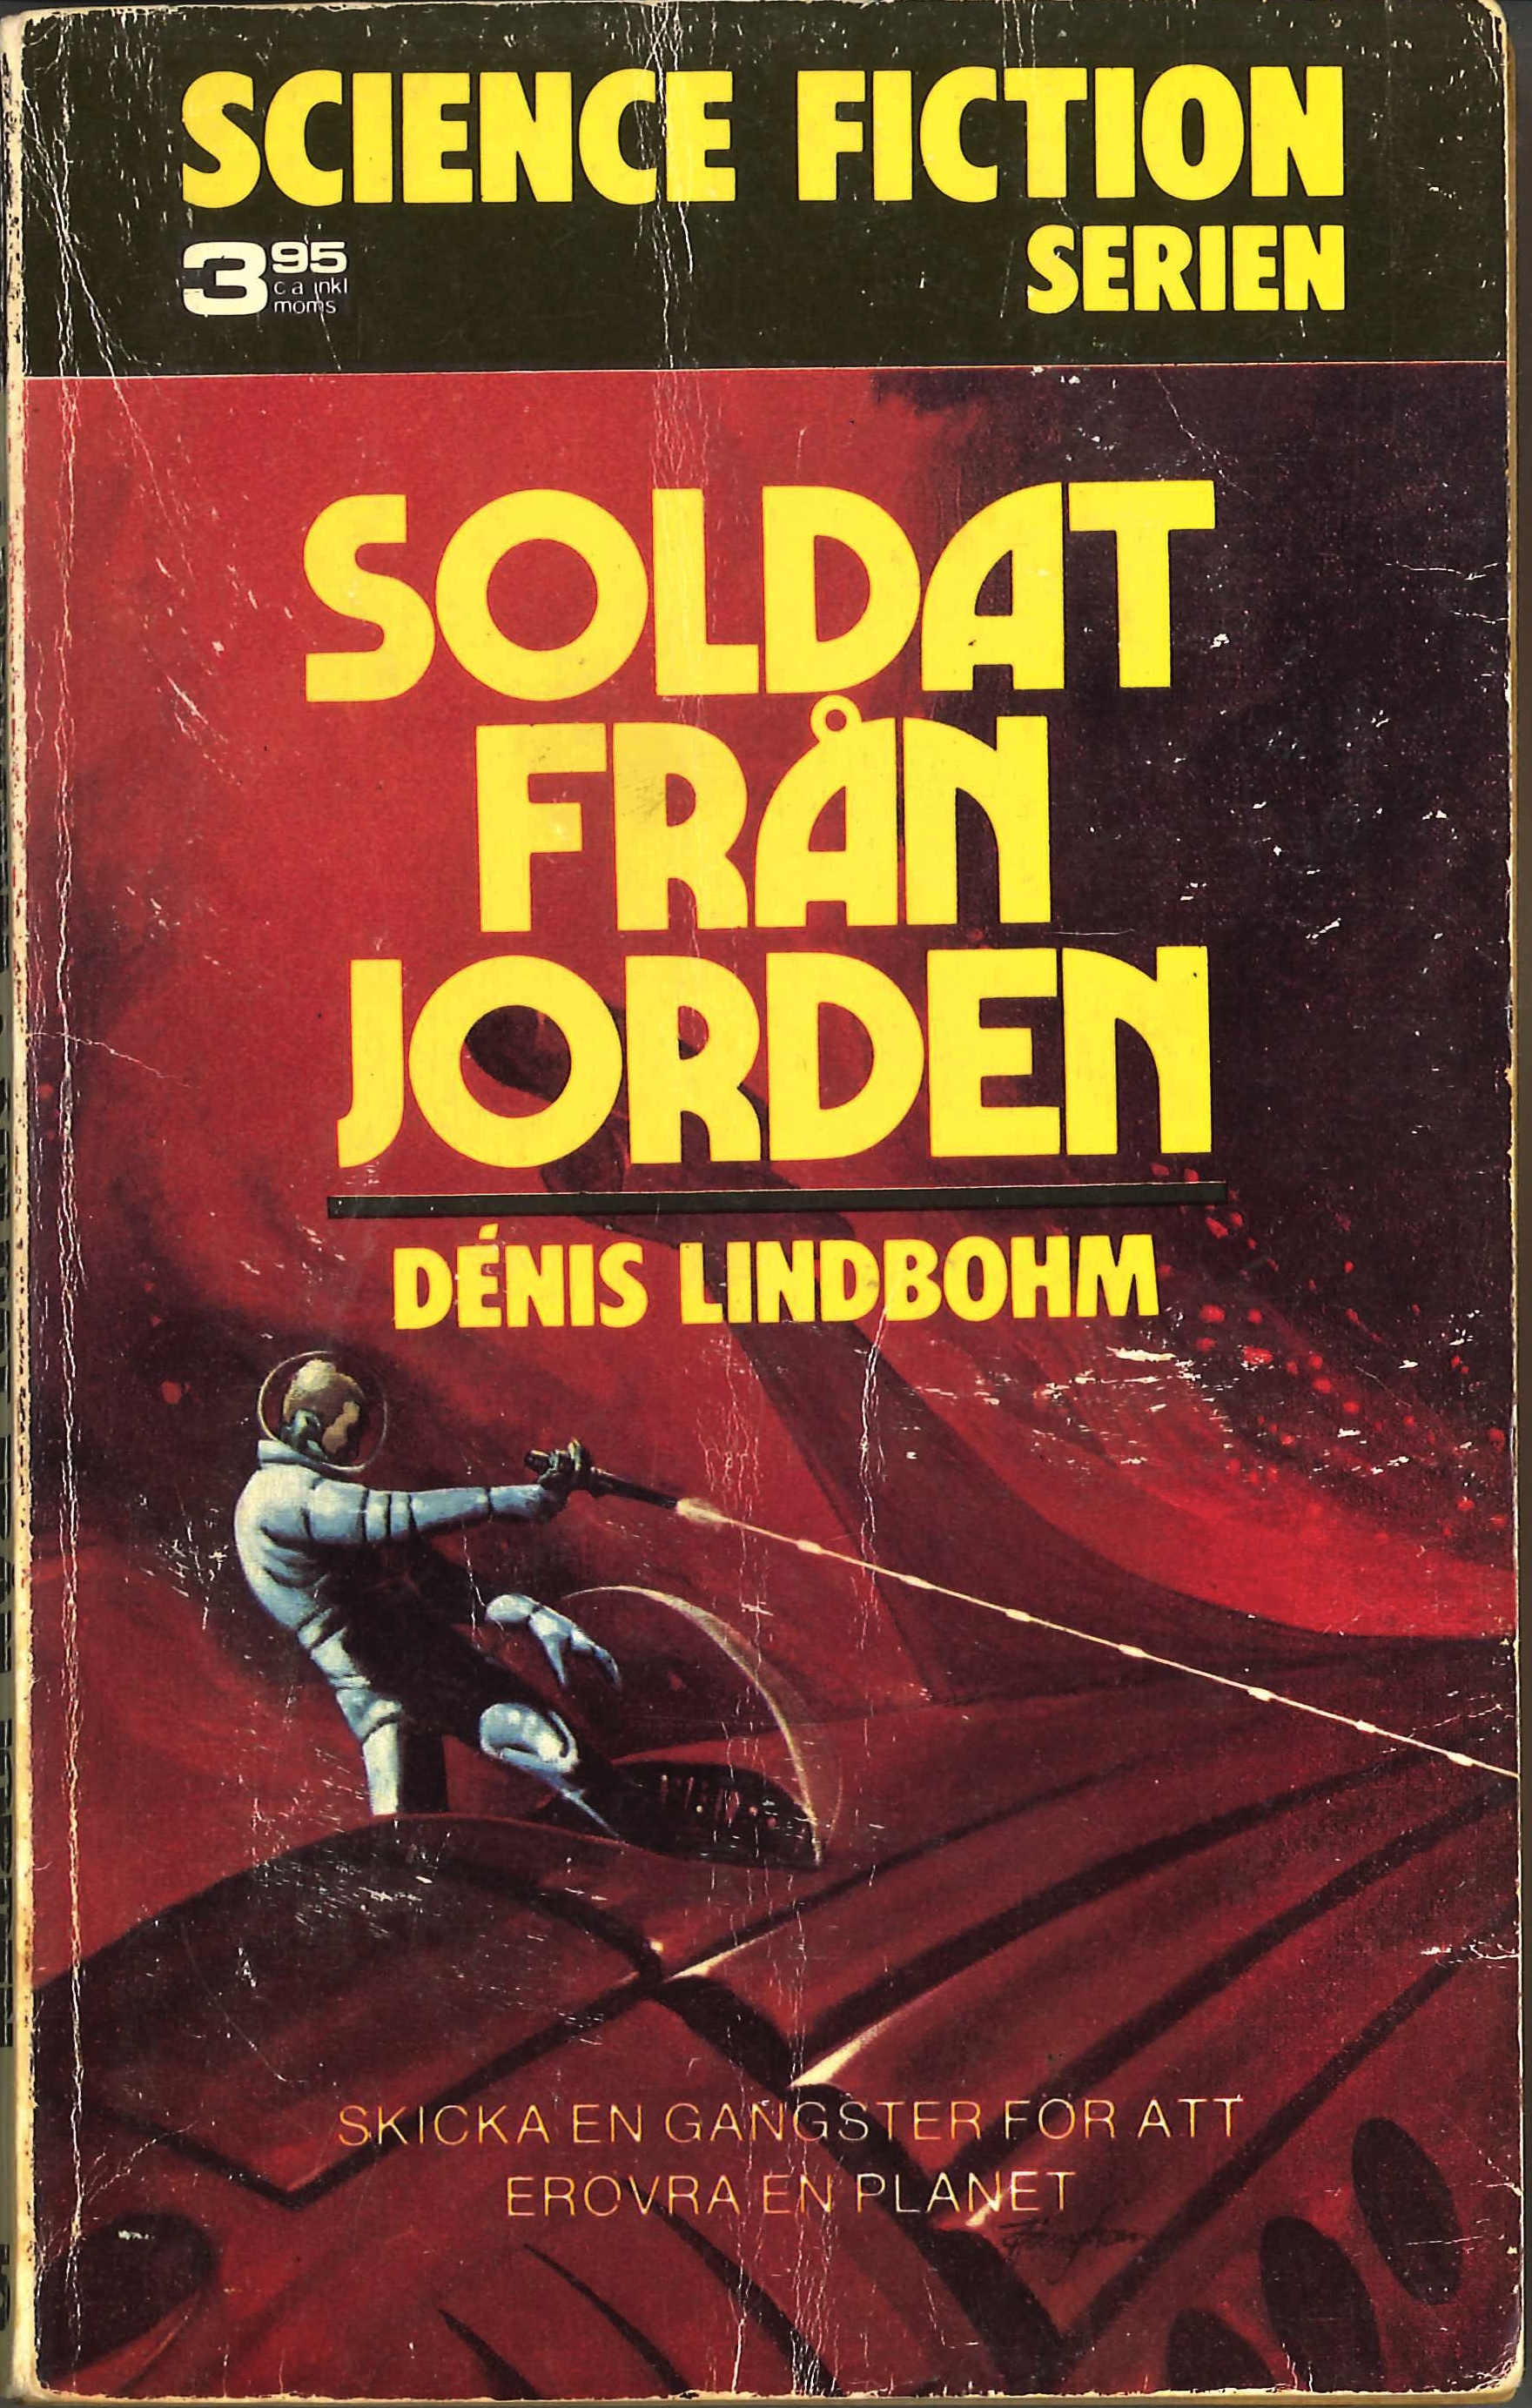 Science Fiction Serien 19731975 Lindfors Frlag